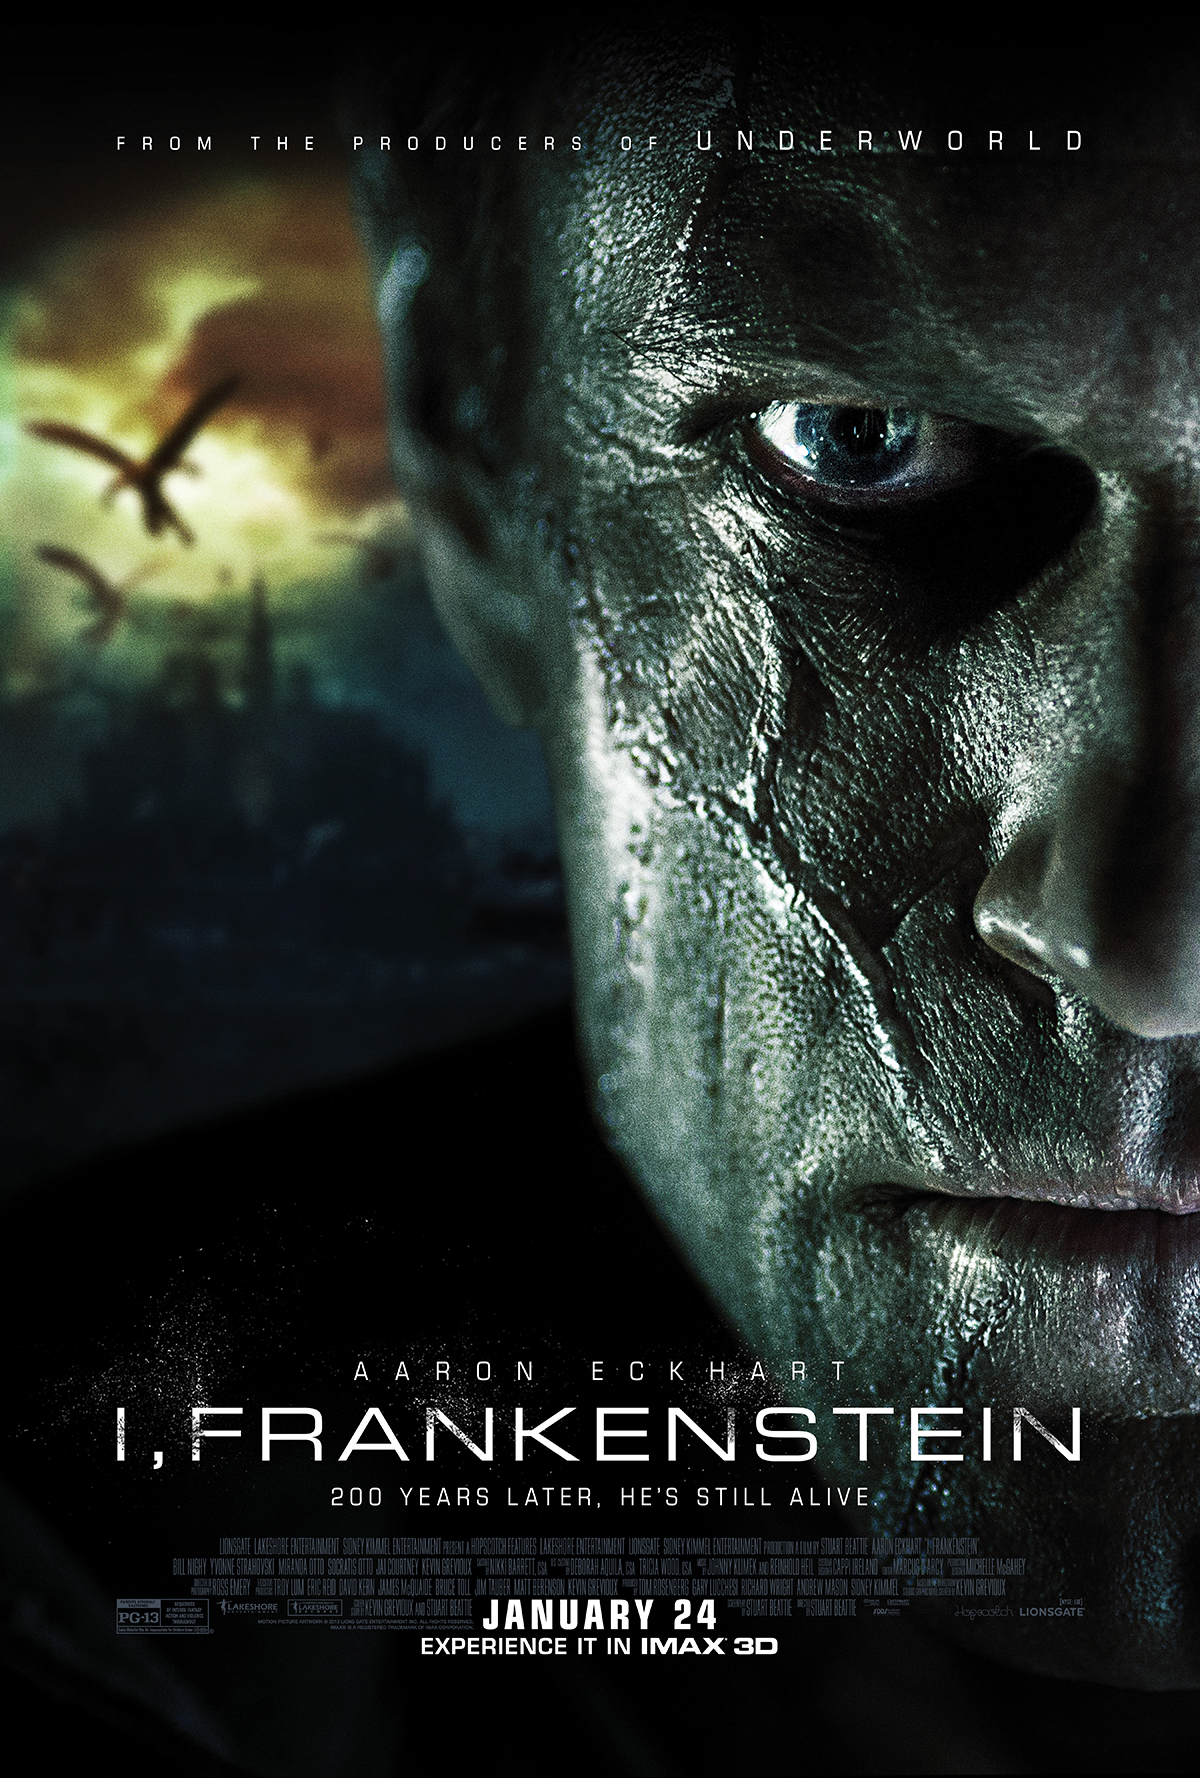 I, Frankenstein: An IMAX 3D Experience